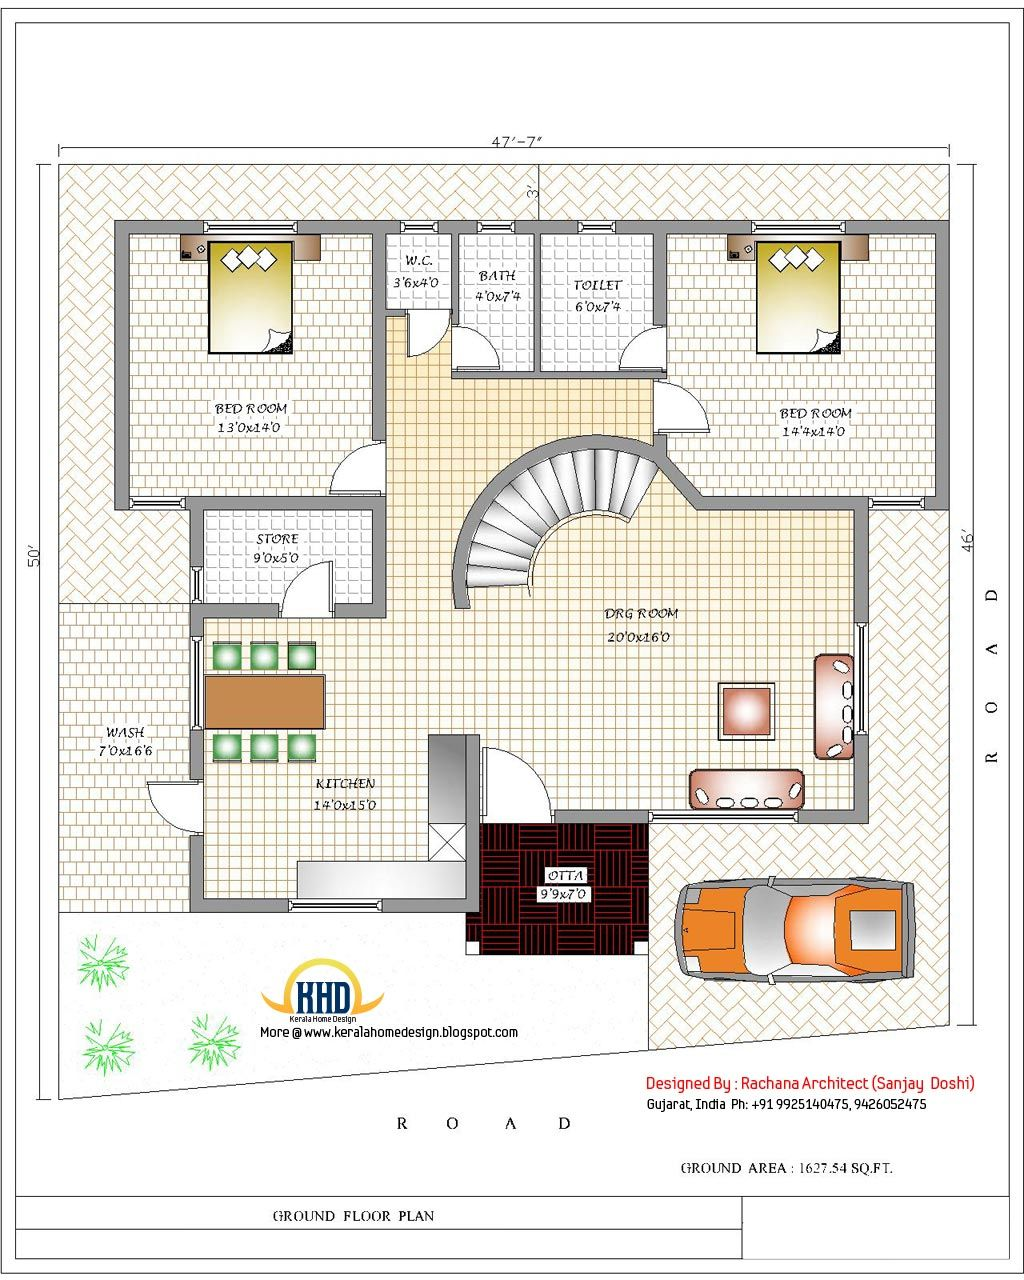 charming architectural house plans 1 house plans designs india - Home Design House Plans